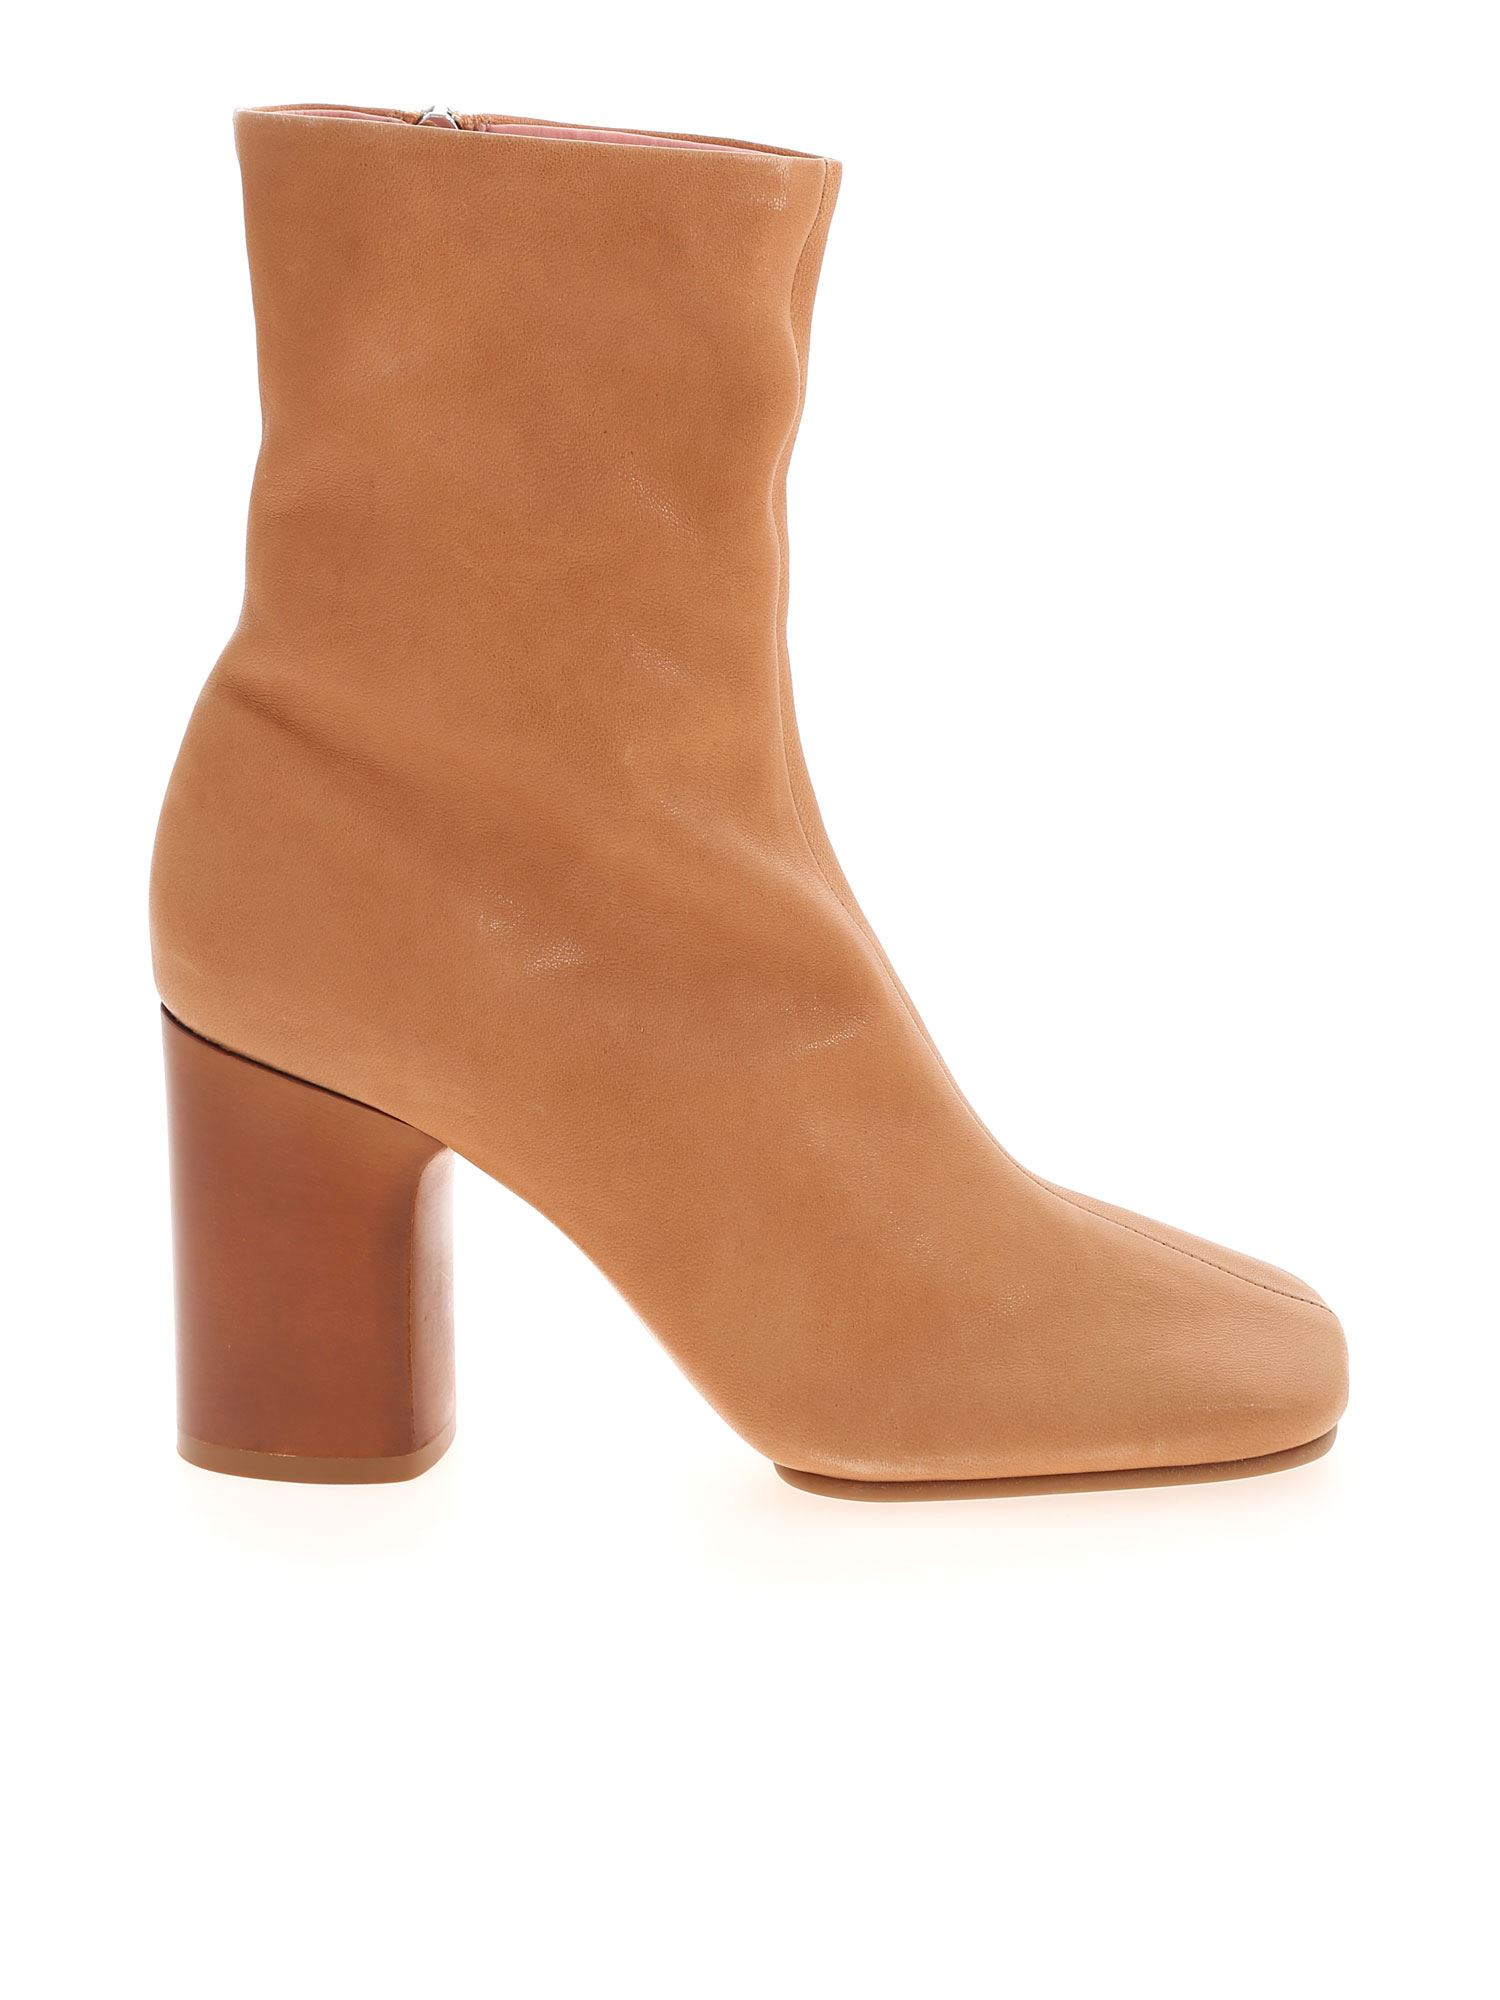 Acne Studios DQUARE TOE ANKLE BOOTS IN BEIGE